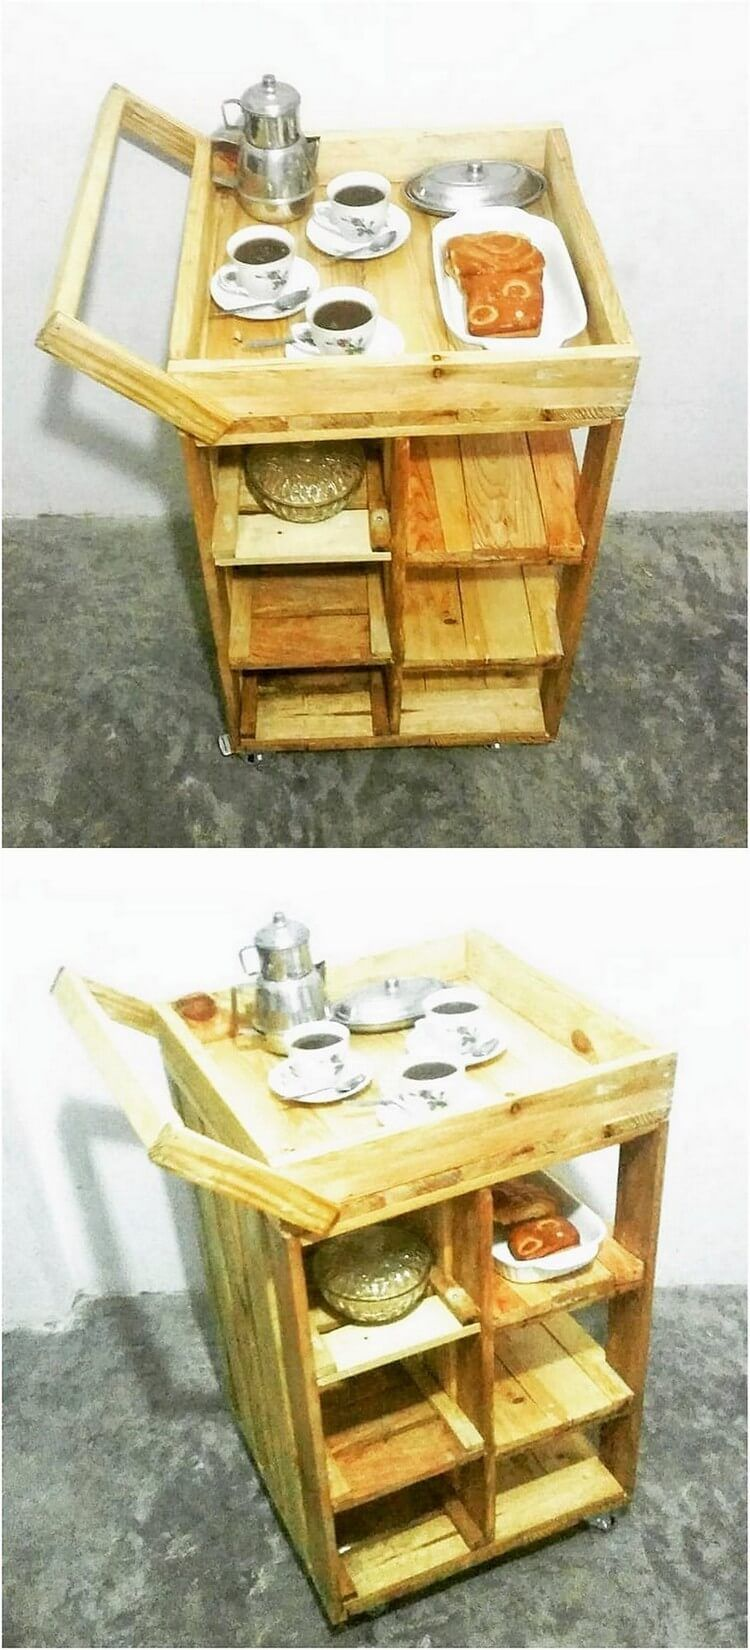 There Would Be No Such Wood Pallet That Would Not Be Utilized In The Creation Of The Coffee Table De Wood Pallets Pallet Furniture Outdoor Wood Pallet Projects